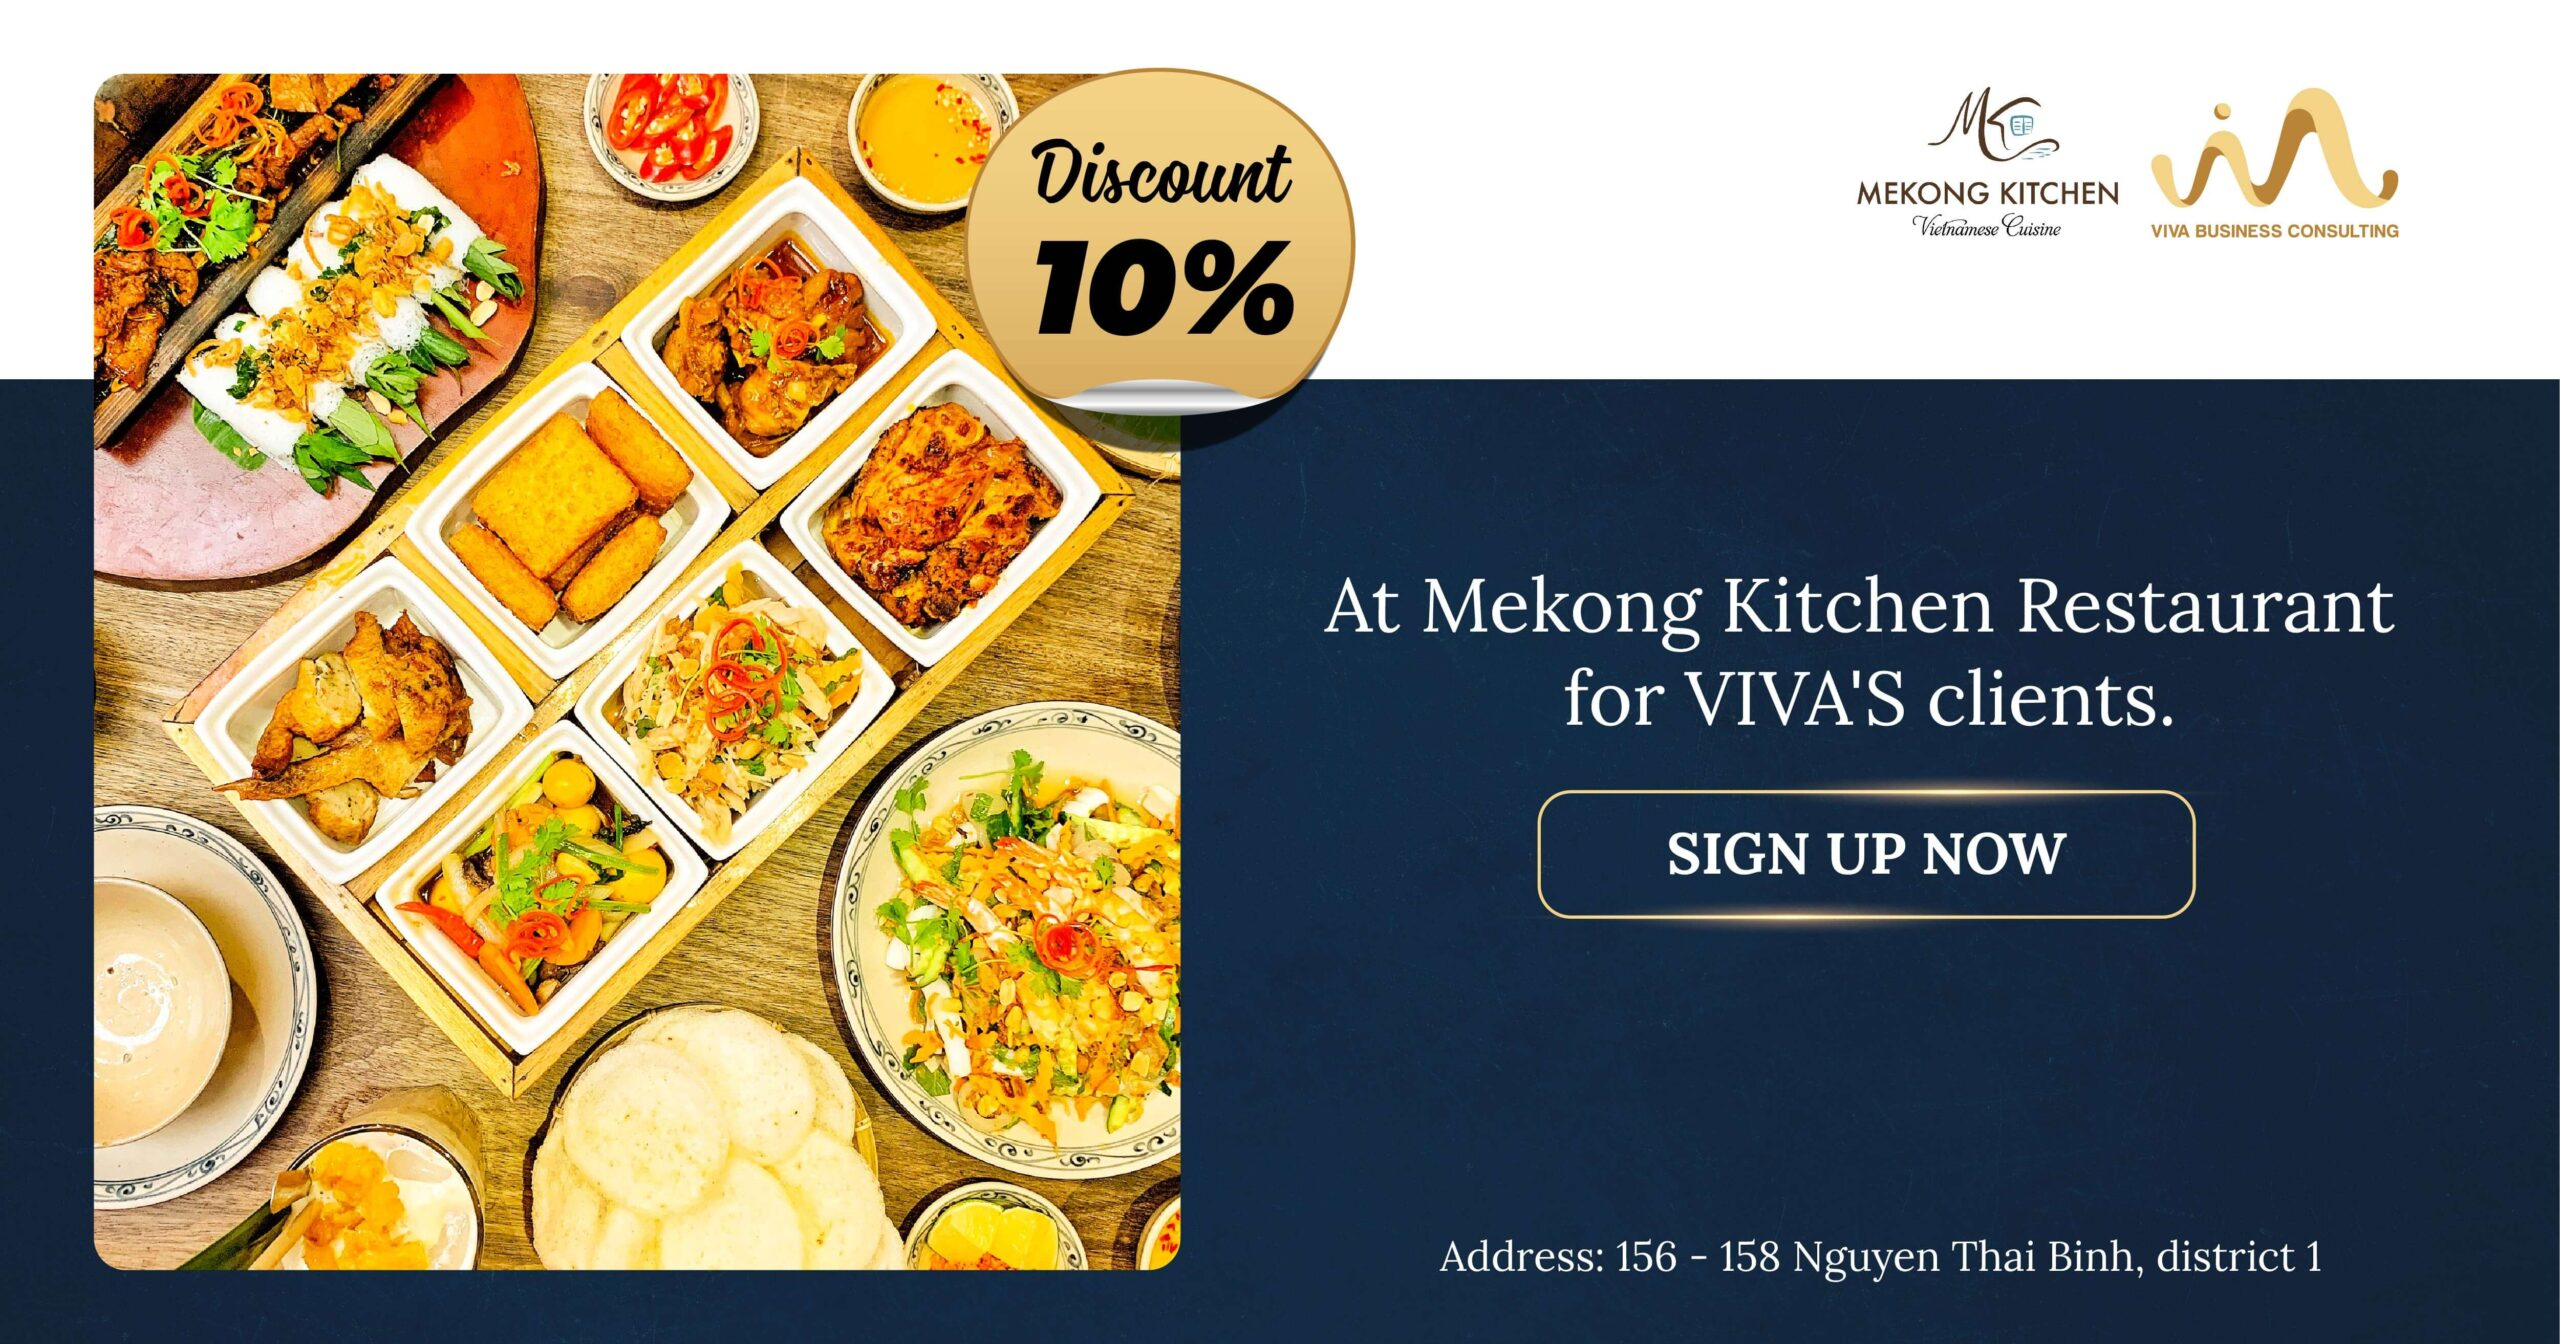 Promotion with Mekong Kitchen Restaurant